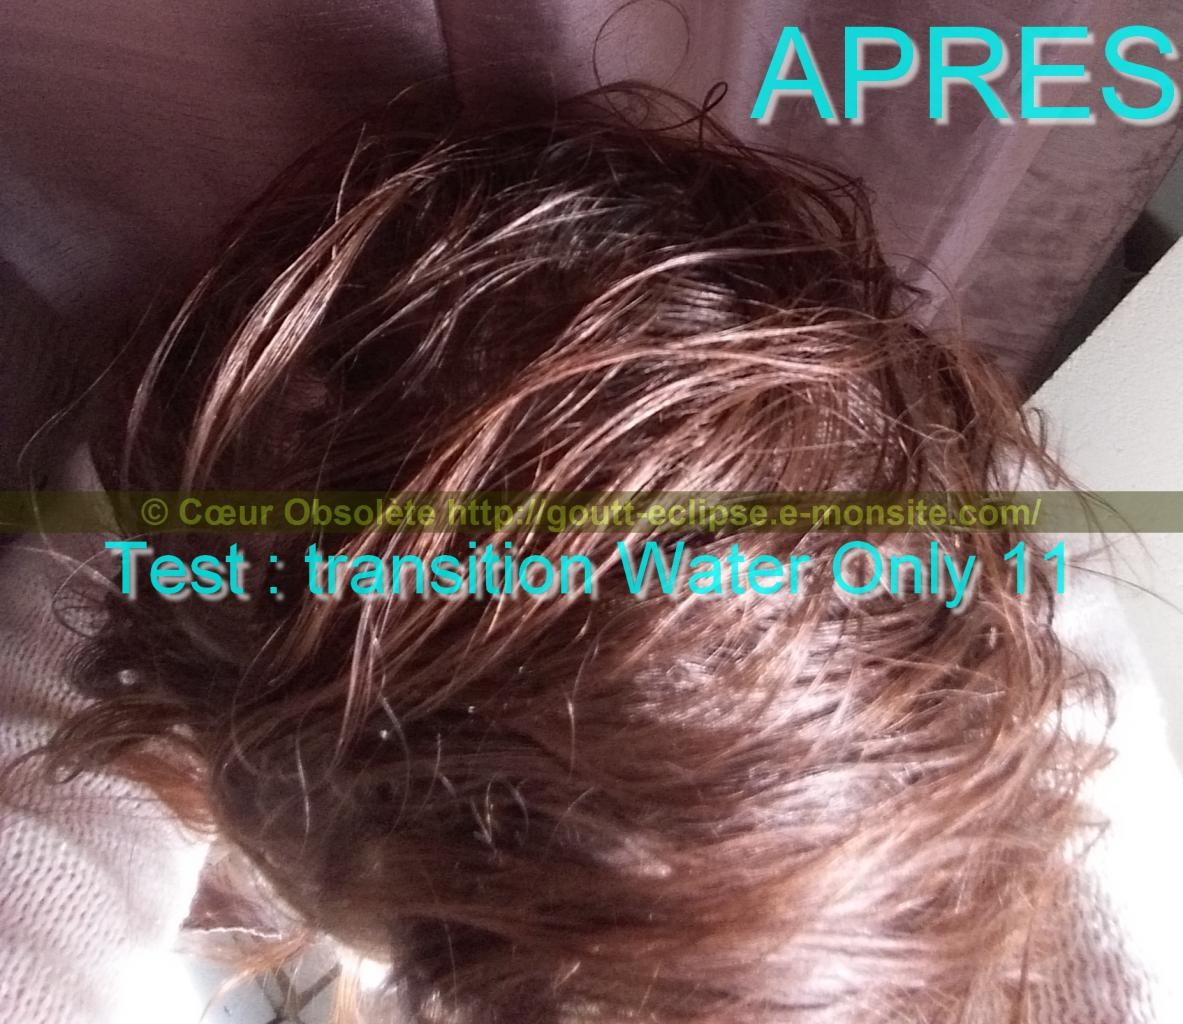 11 Fév 2018 Test Water Only Transition lavage N°11 photo APRES 31